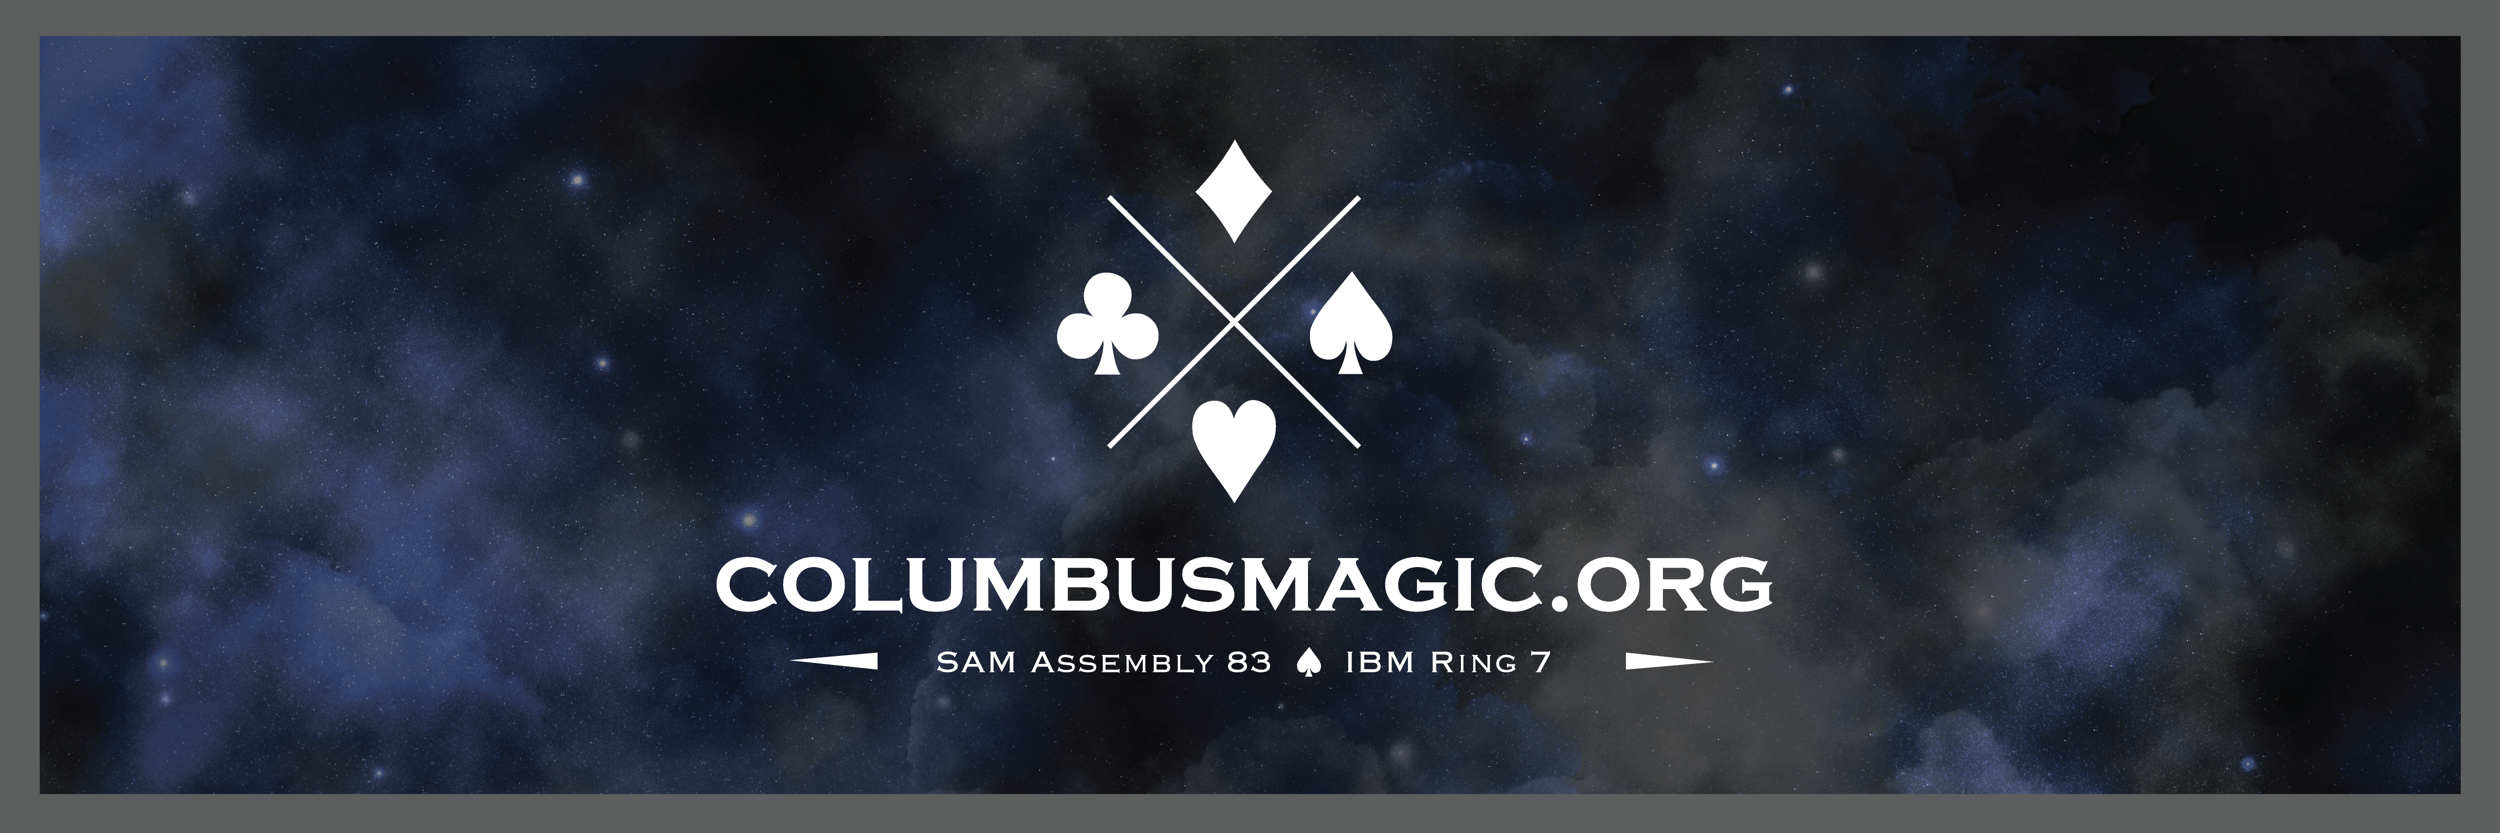 ColumbusMagic.org